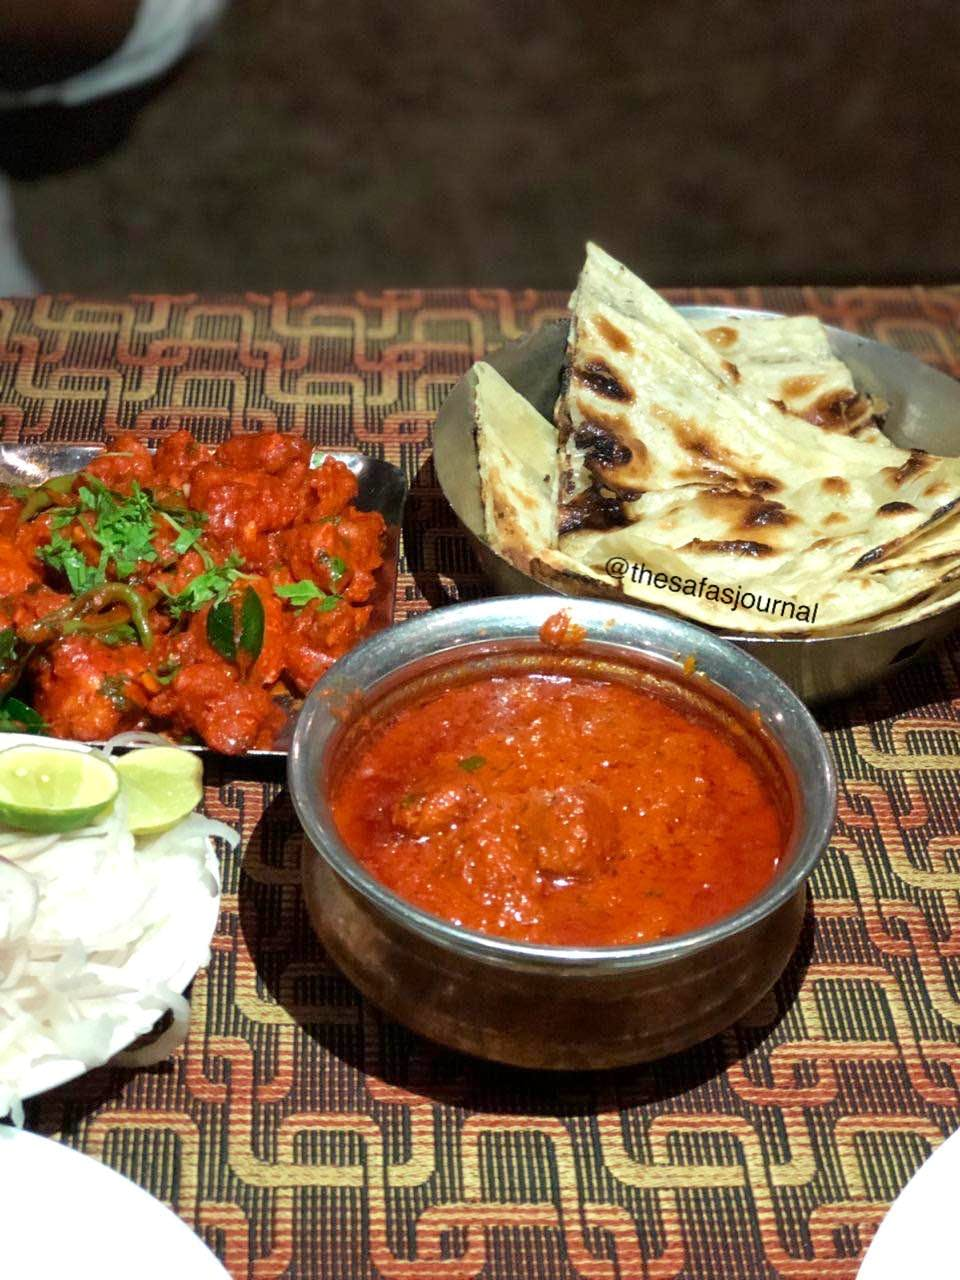 Dish,Food,Cuisine,Naan,Ingredient,Punjabi cuisine,Curry,Chapati,Muhammara,Produce